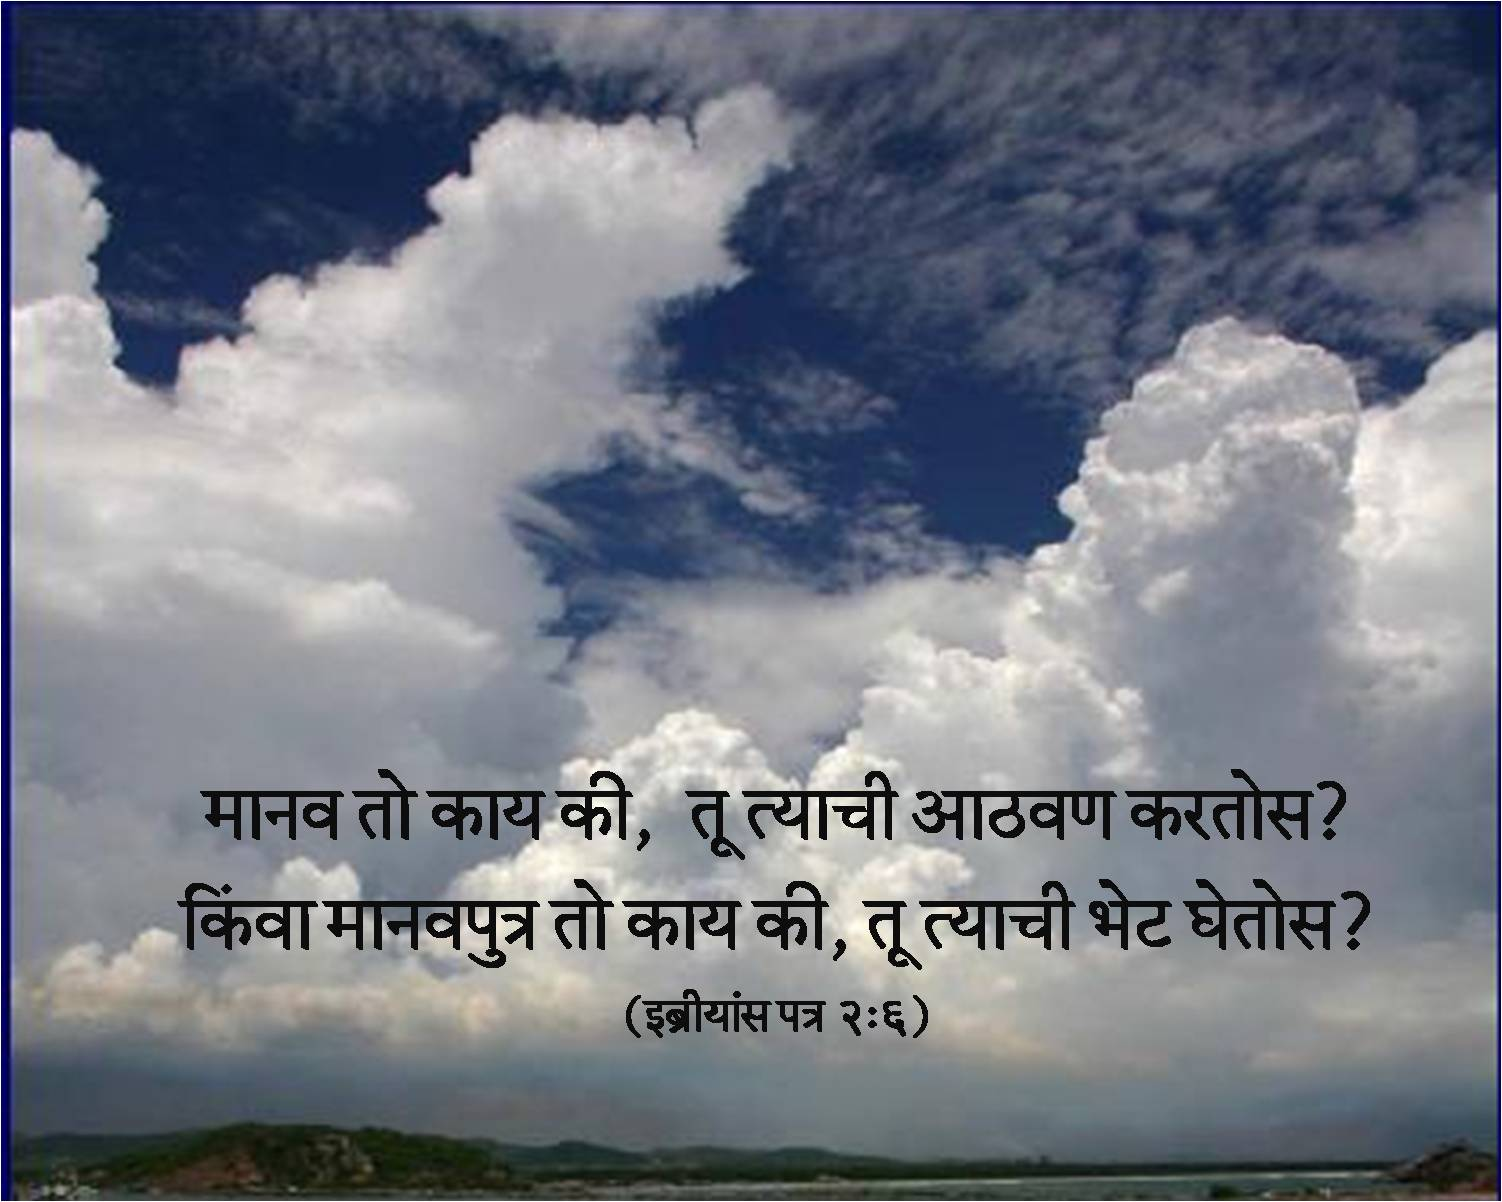 marathi bible quotes thank you j e s u s for loving me